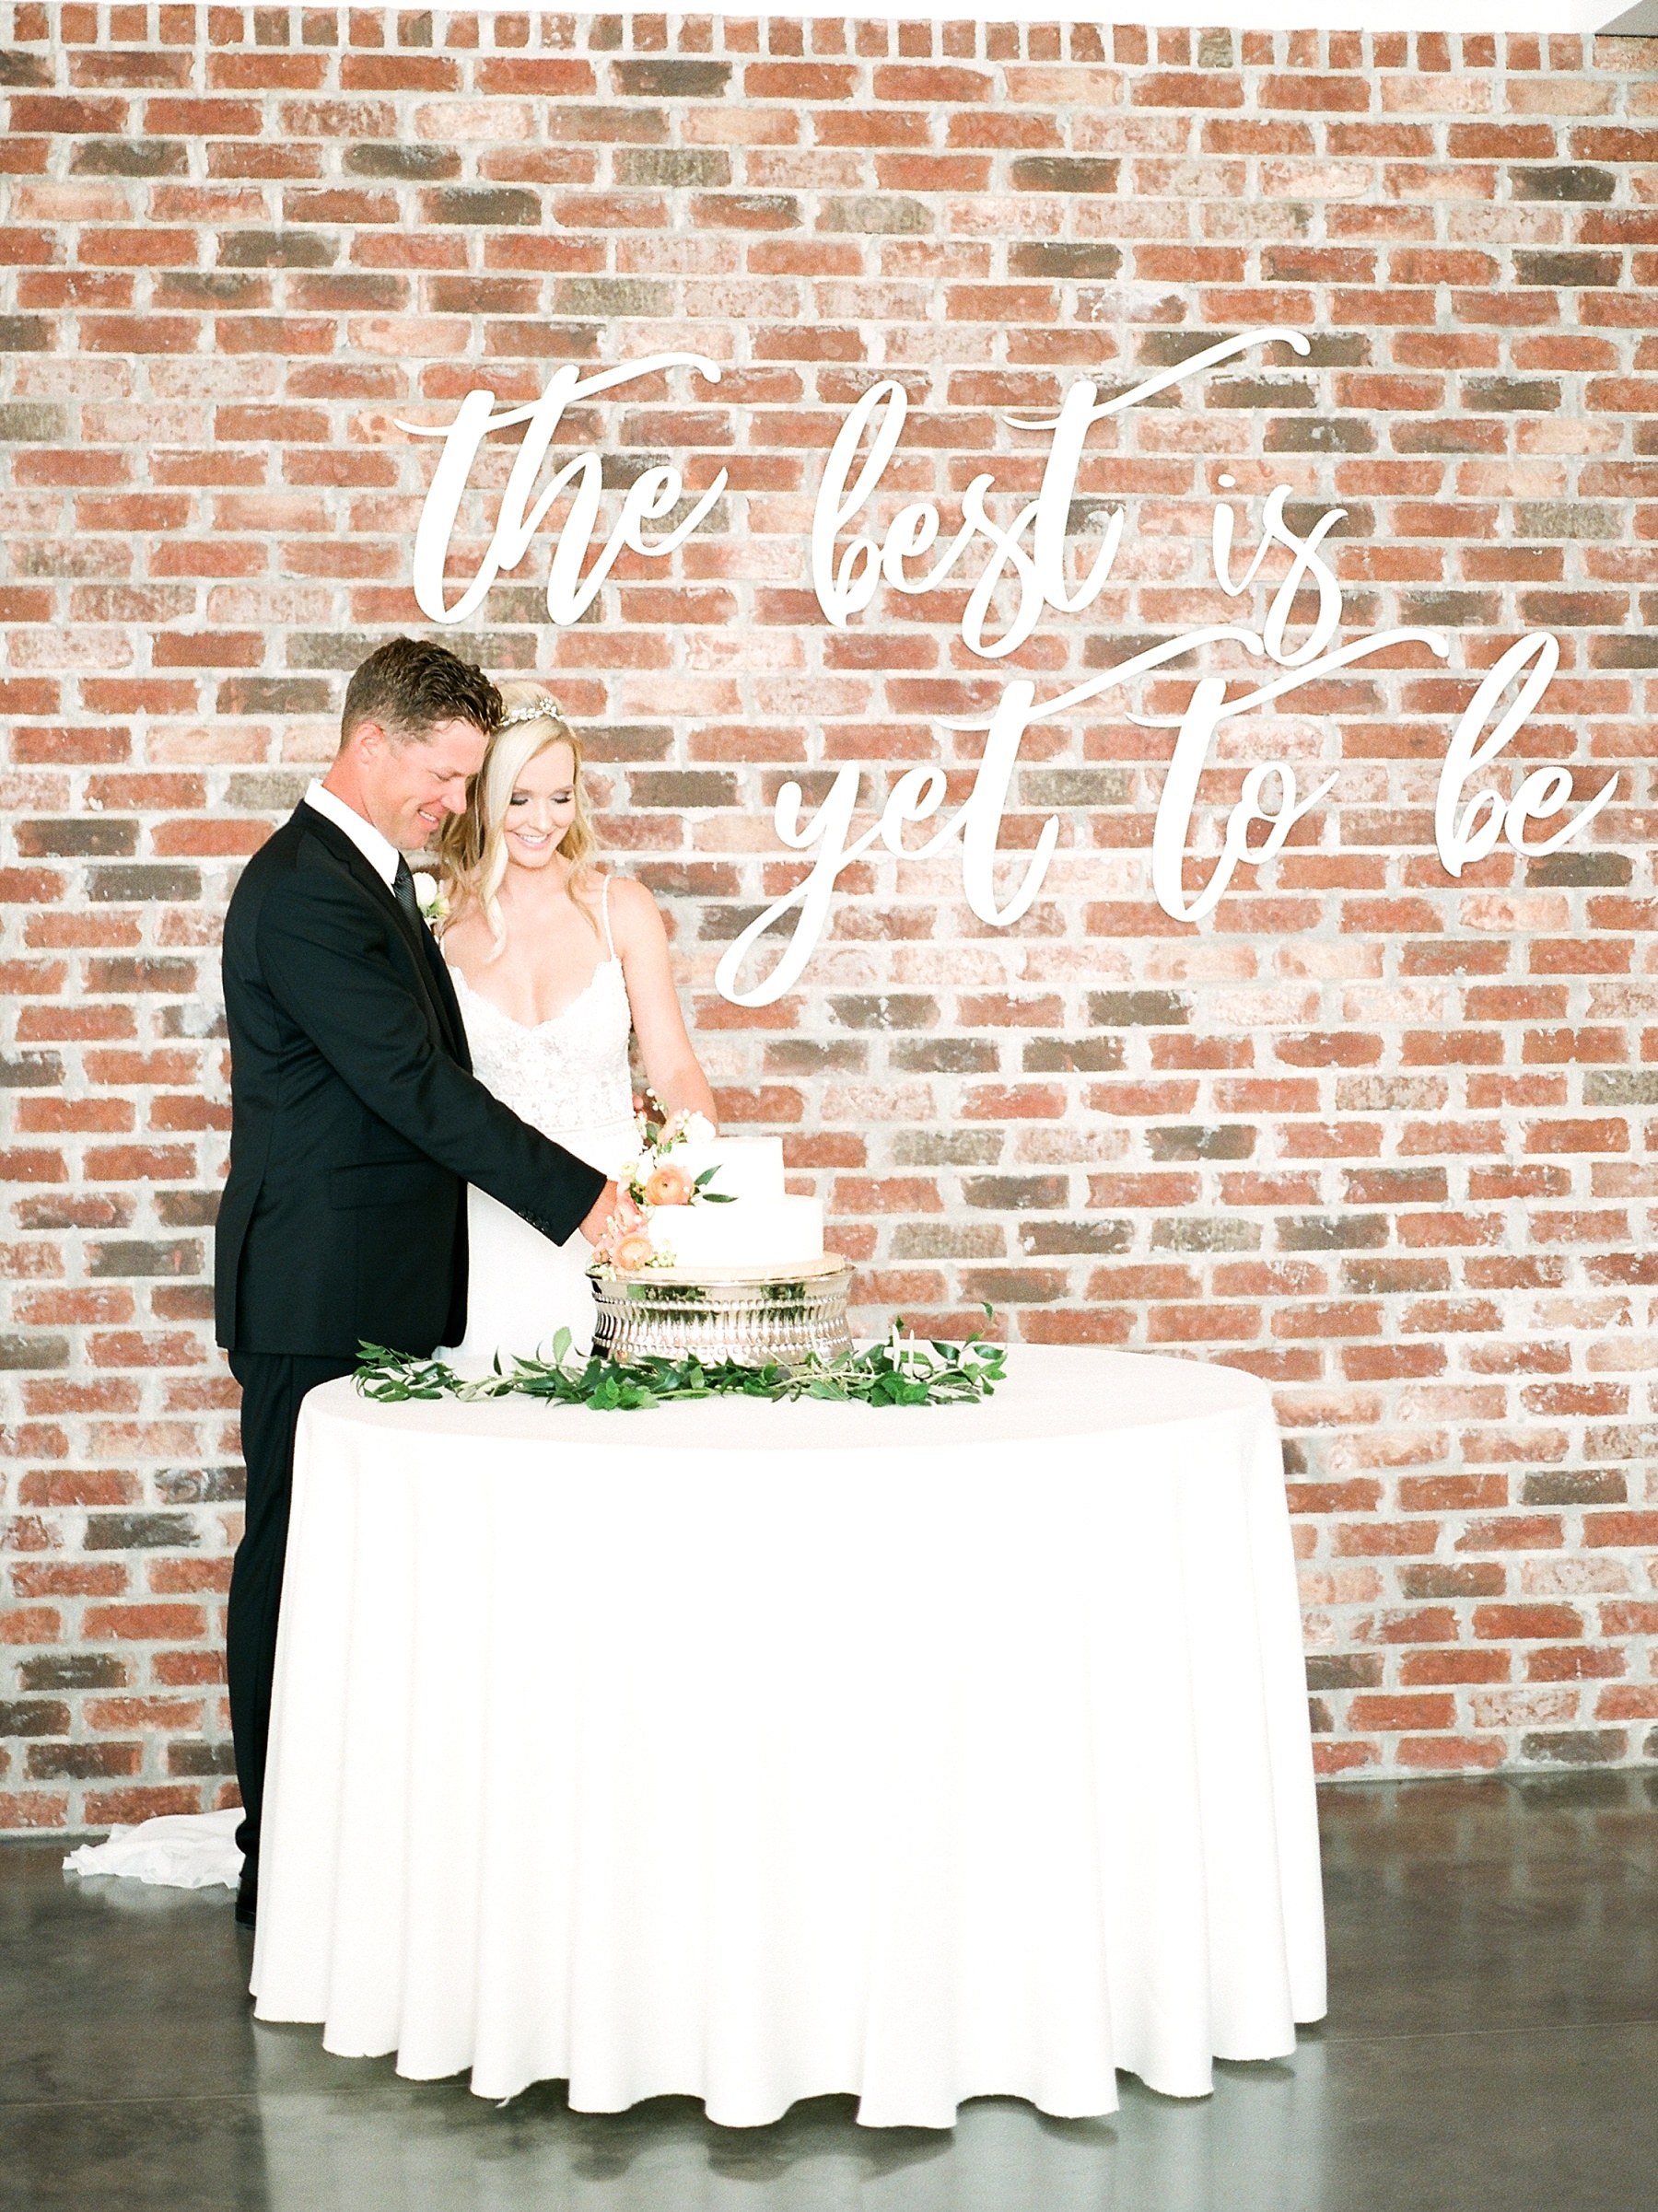 Textural Organic Wedding in All White Venue by Kelsi Kliethermes Wedding Photographer - Missouri, Midwest, and Destinations_0120.jpg